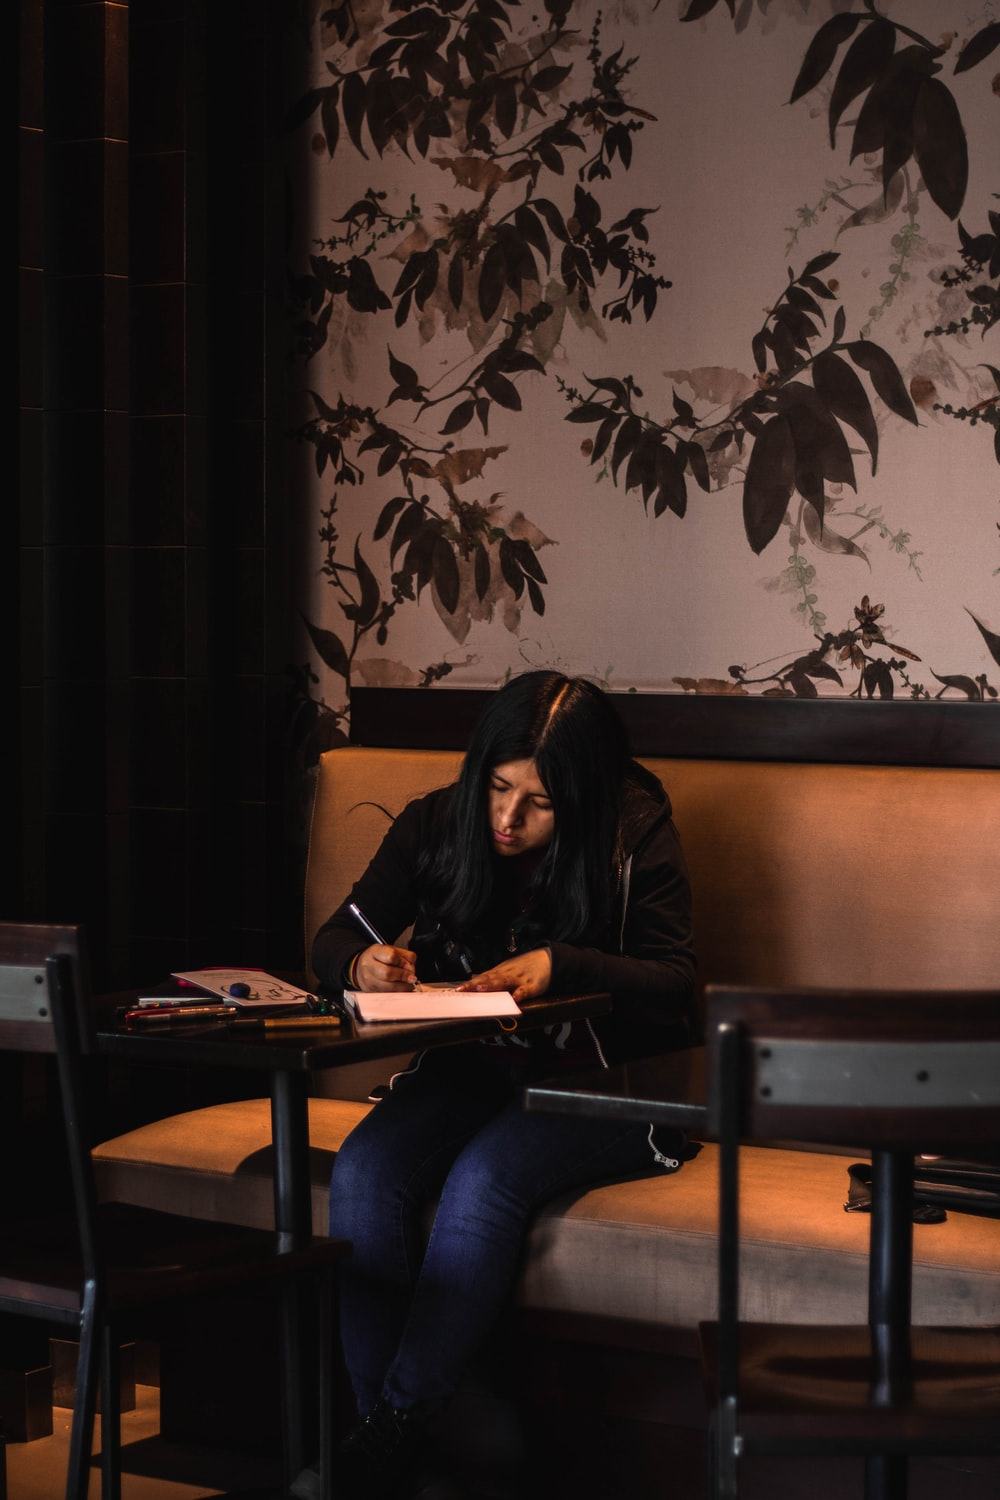 woman writing on white paper while sitting on chair